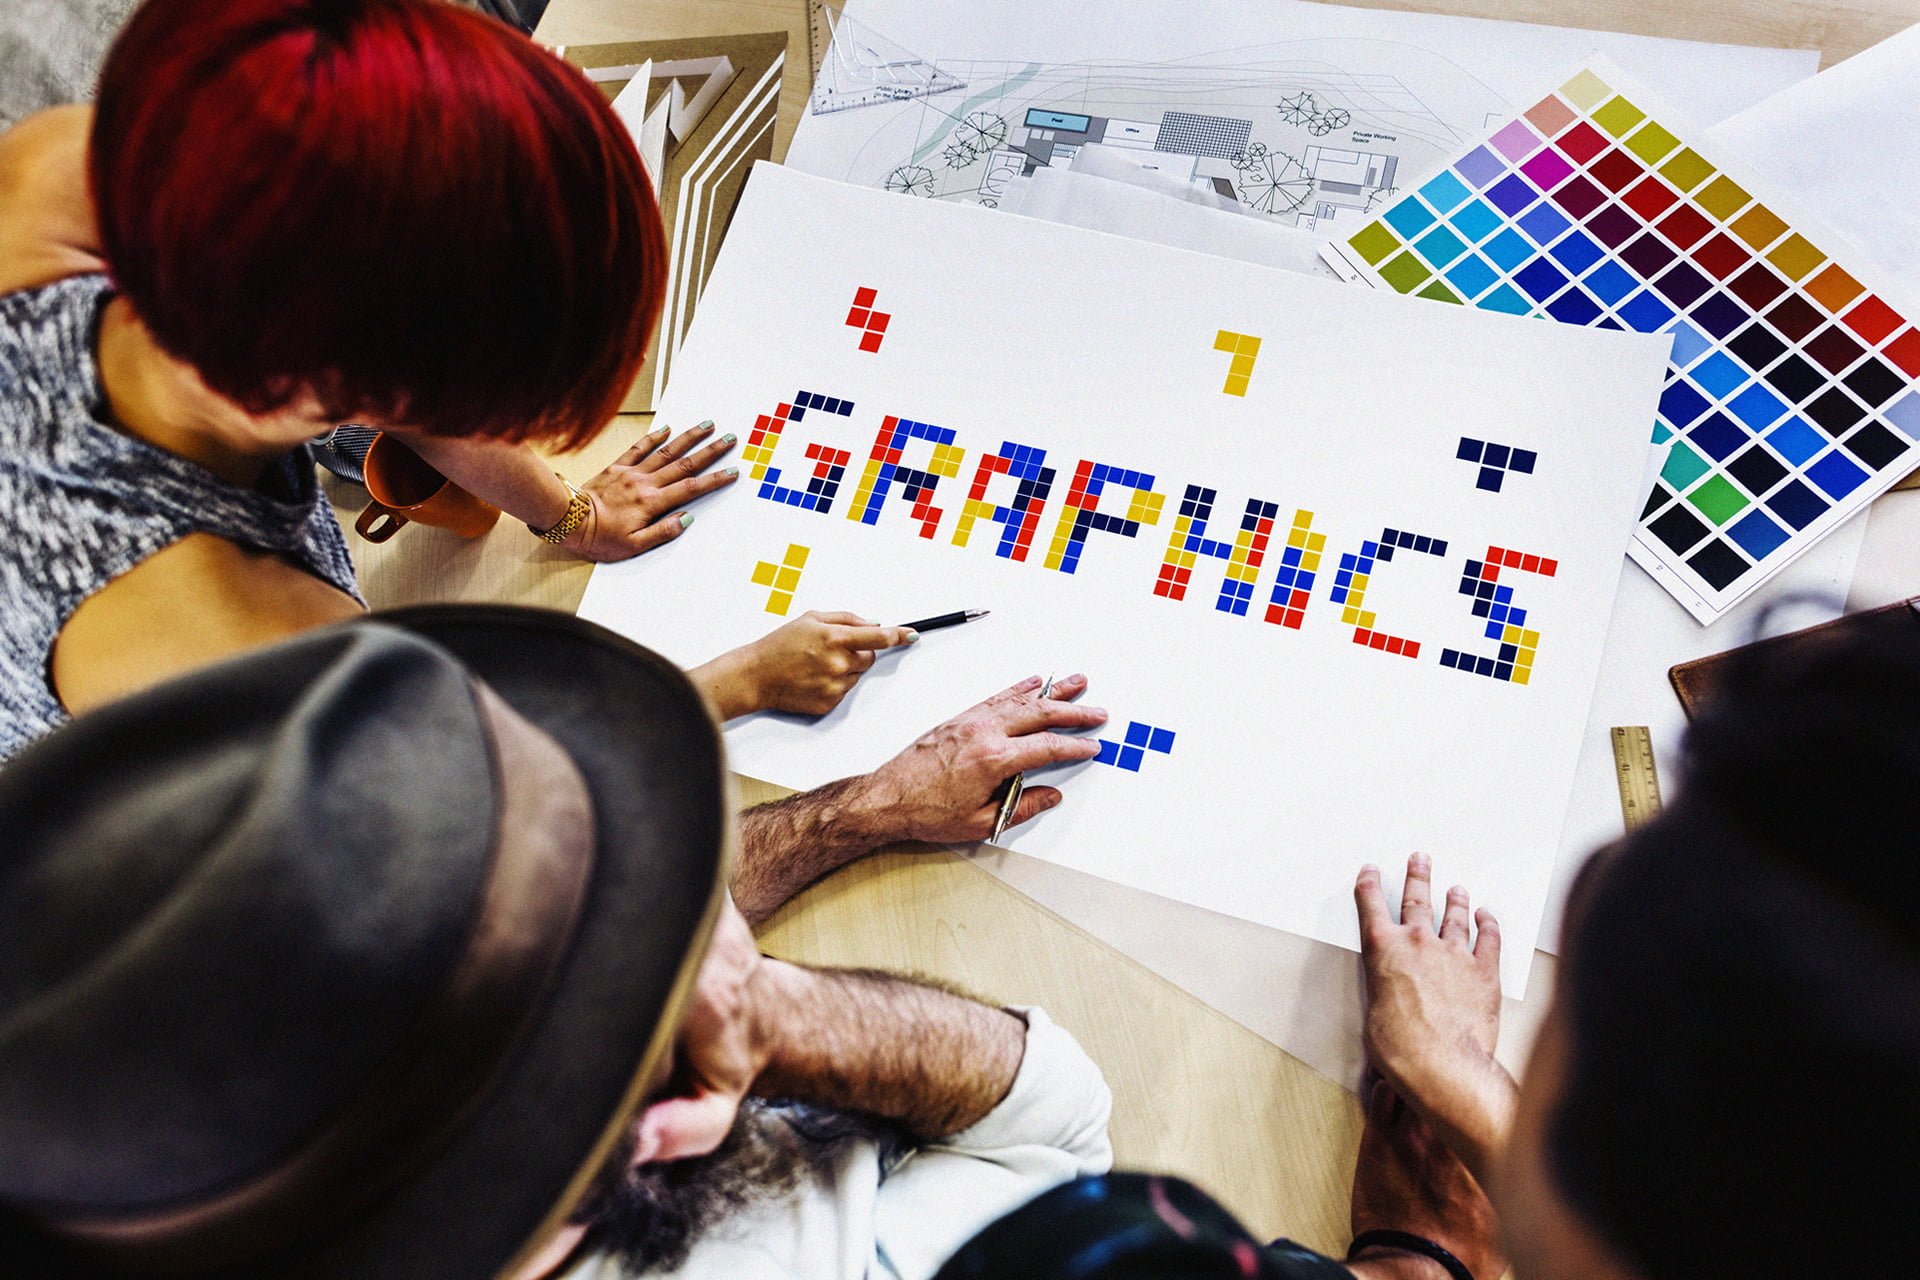 3 graphic designers discussing project at huge desk